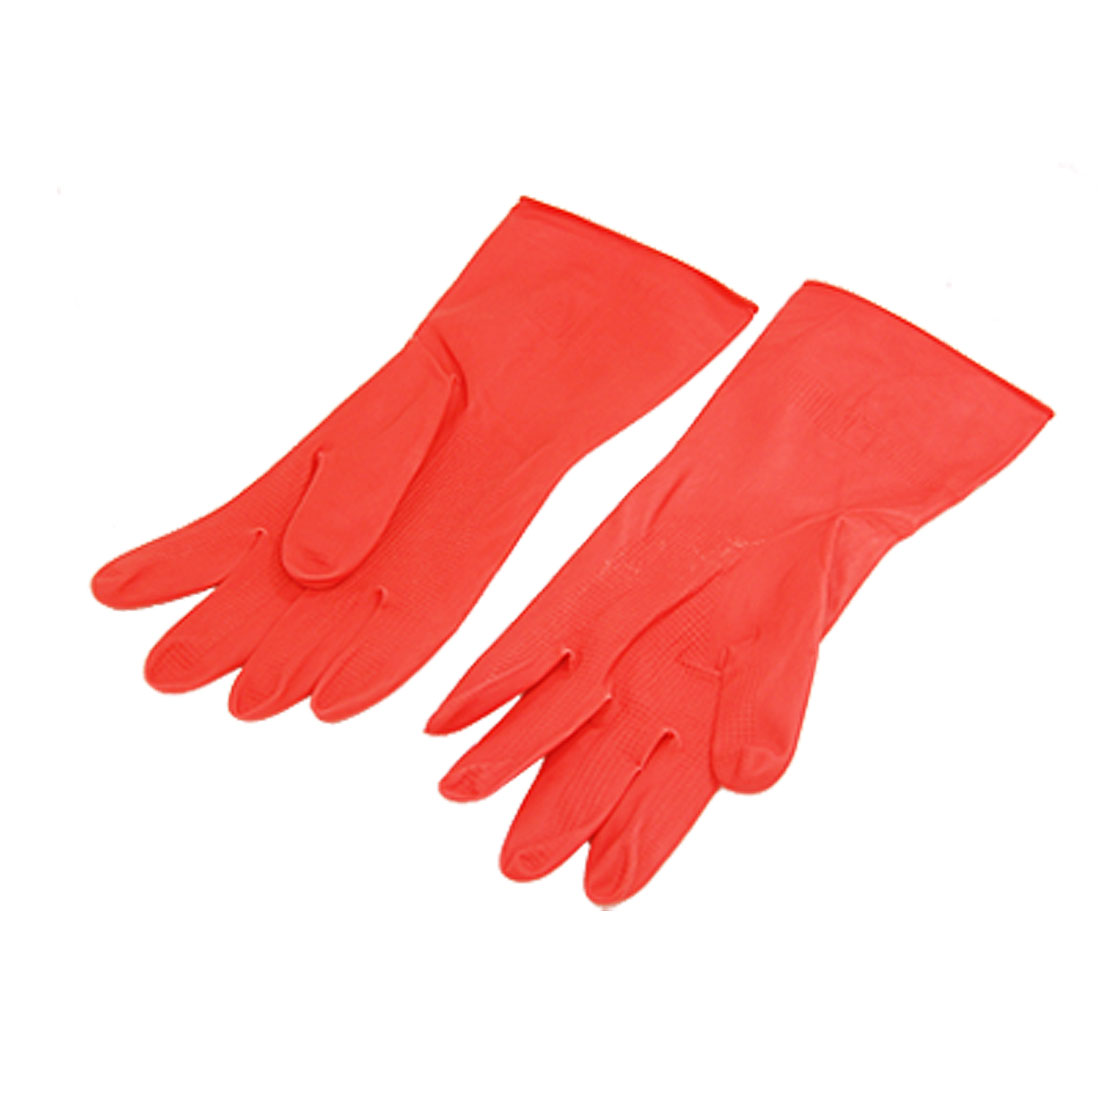 Long Household Wash Clean Latex Gloves Size Large Red